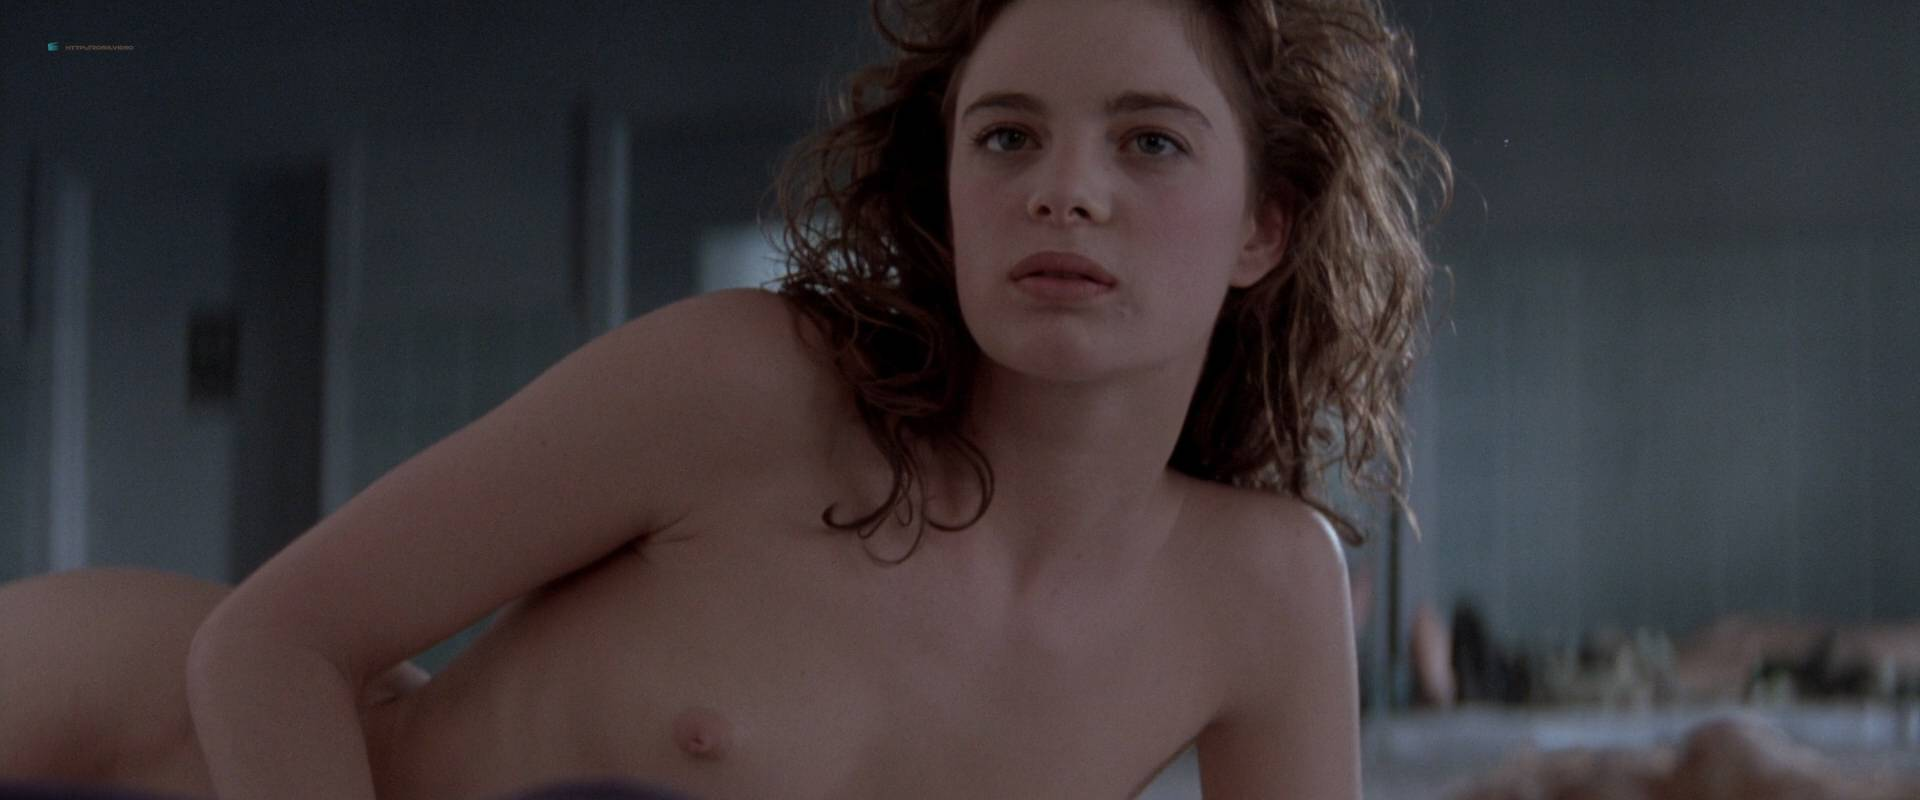 Naked pictures of meg tilly, sexy muslim couples pic and image